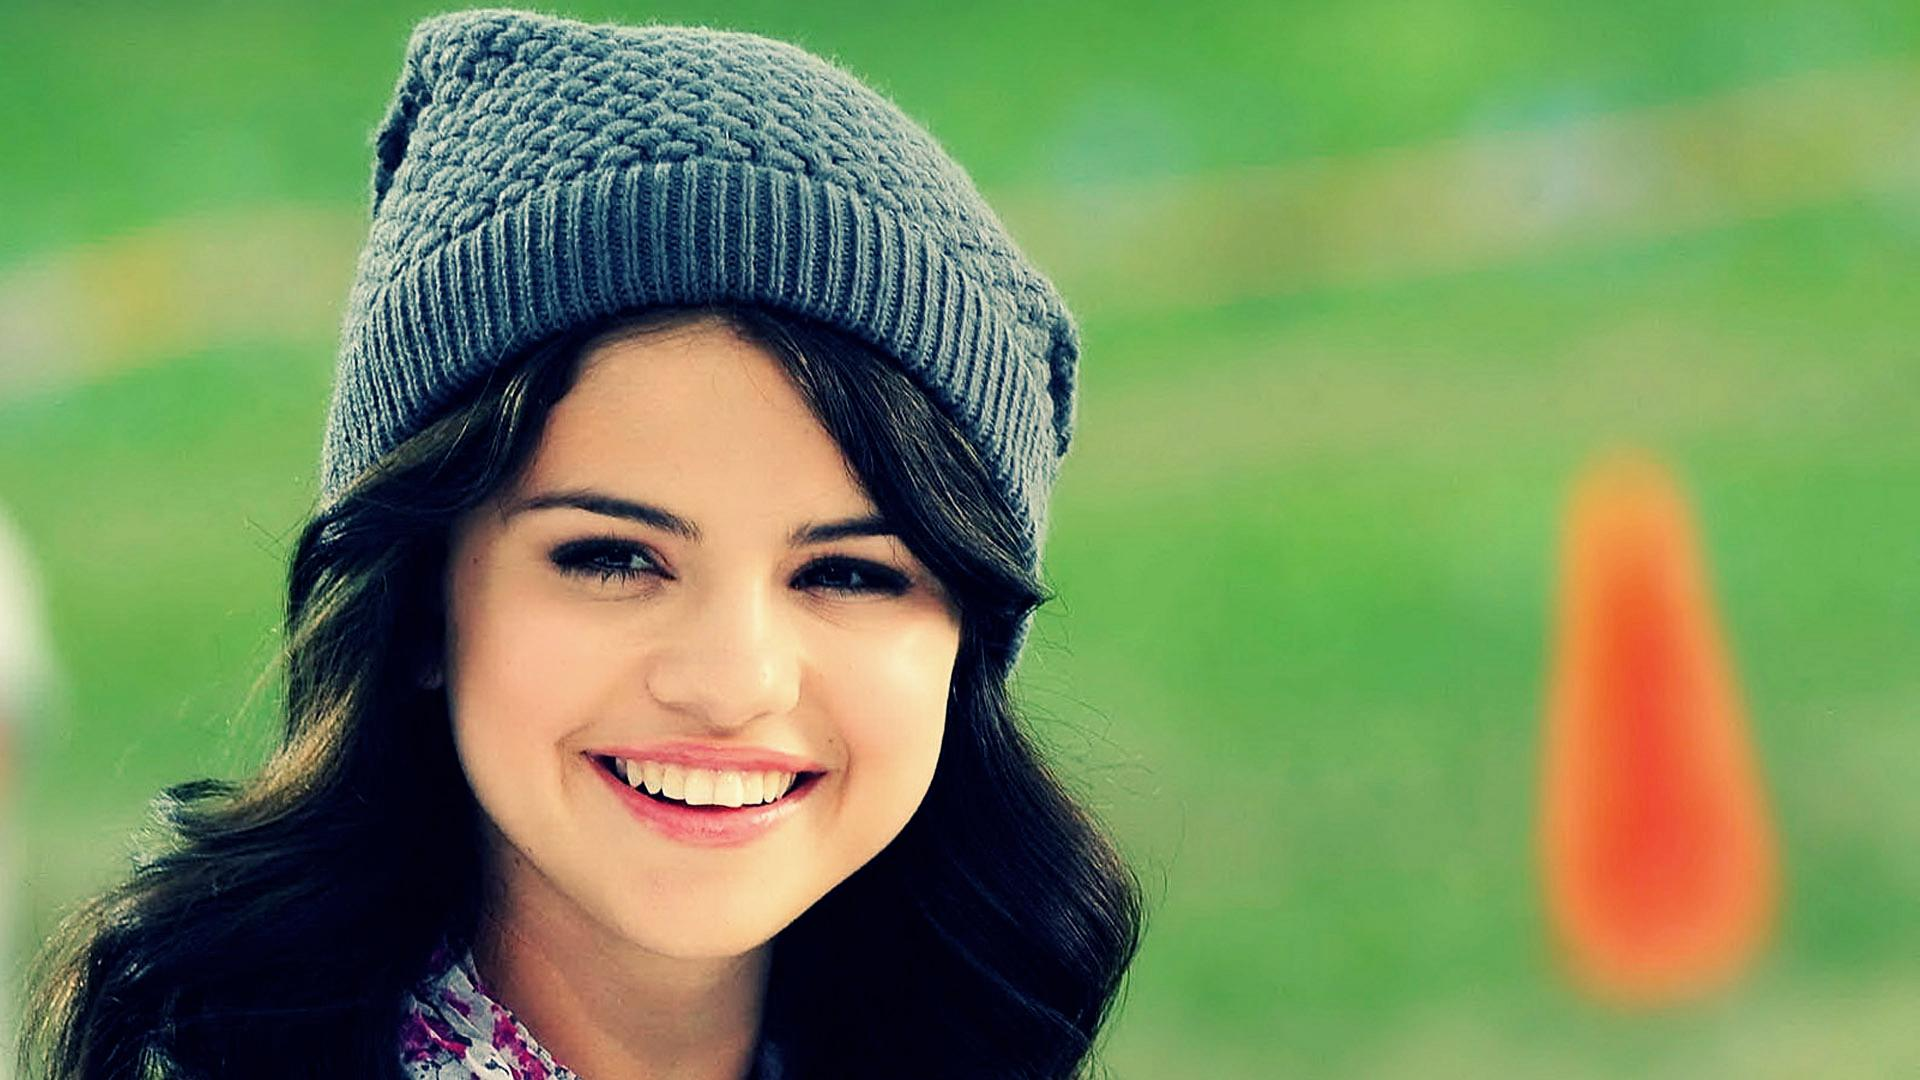 Download Selena Gomez 2013 Lovely Wallpaper Wallpapers 1920x1080